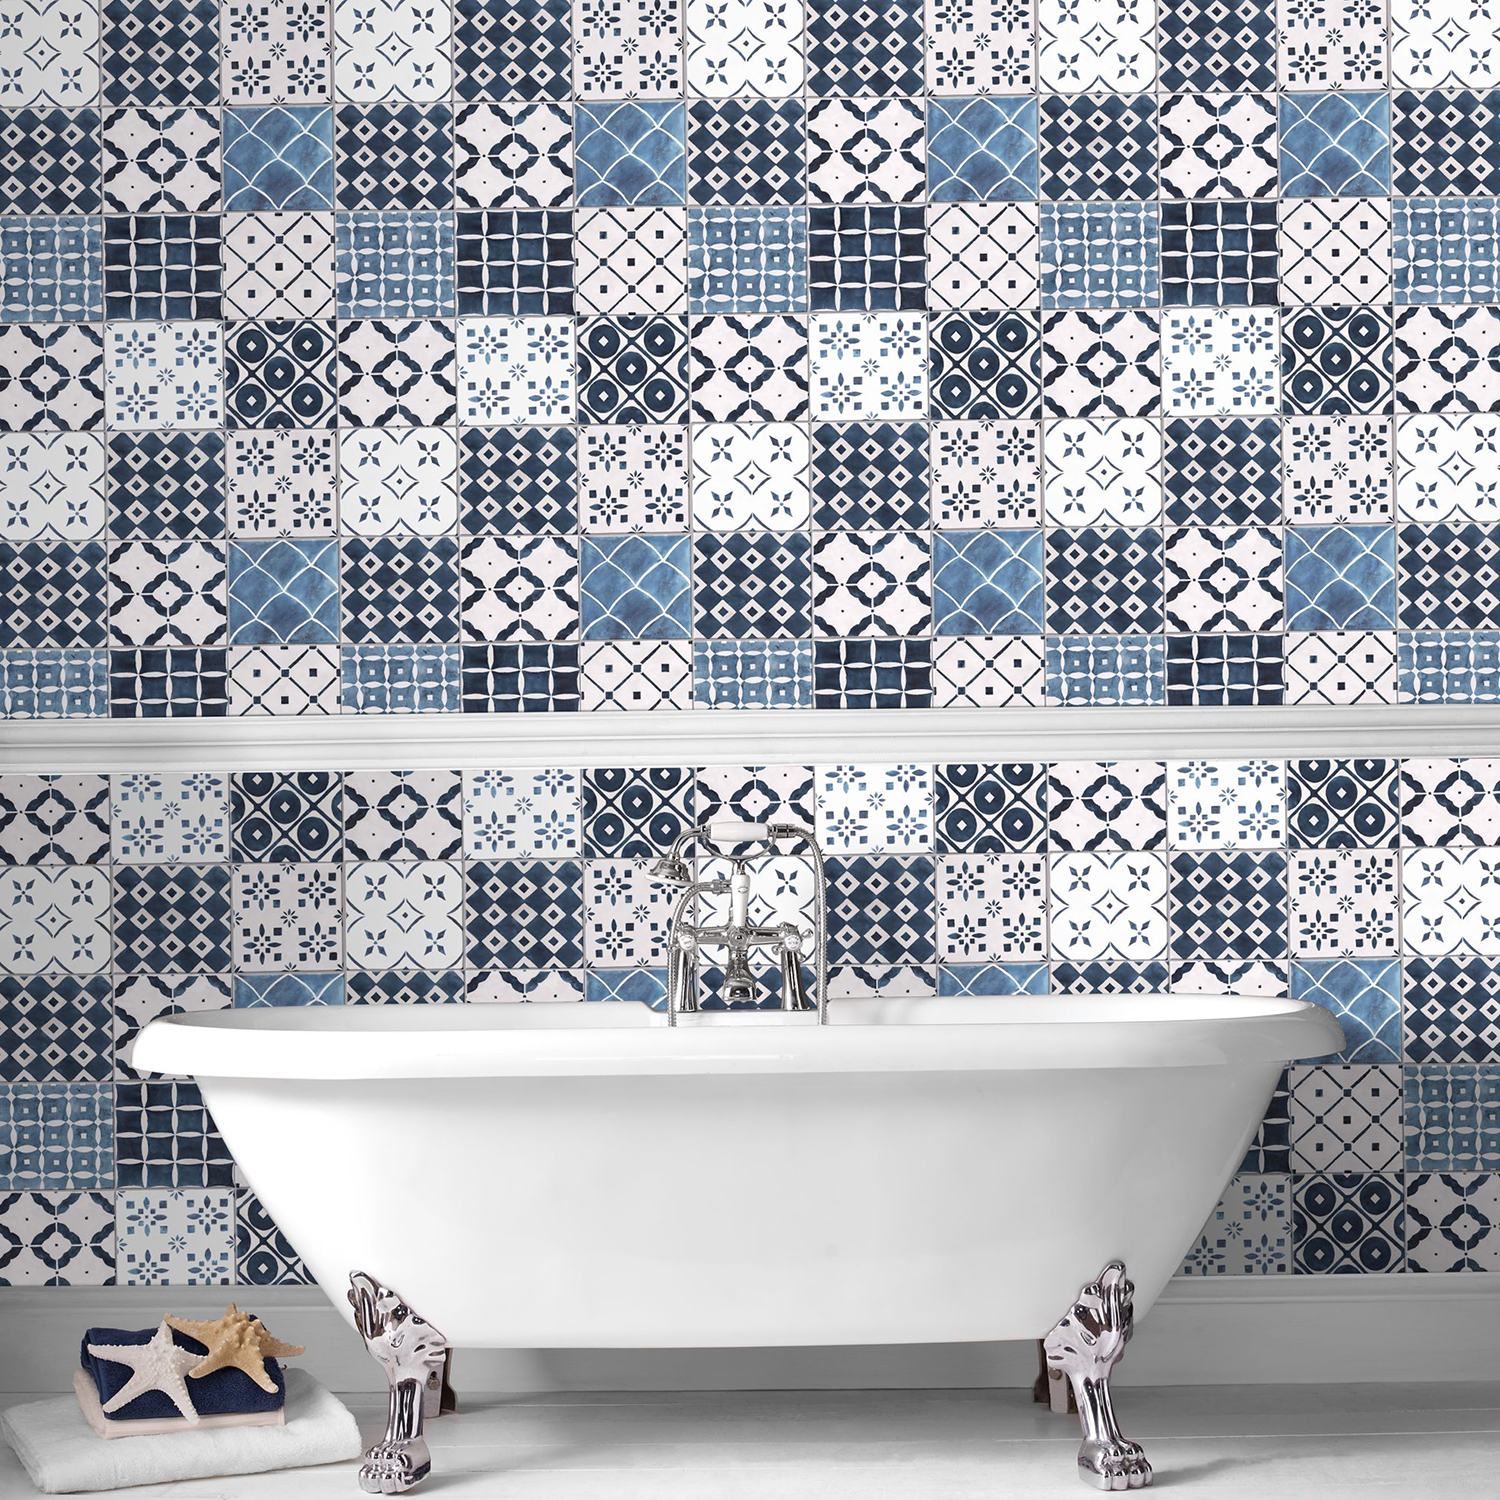 Patterned Wallpaper and Roll Top Bath